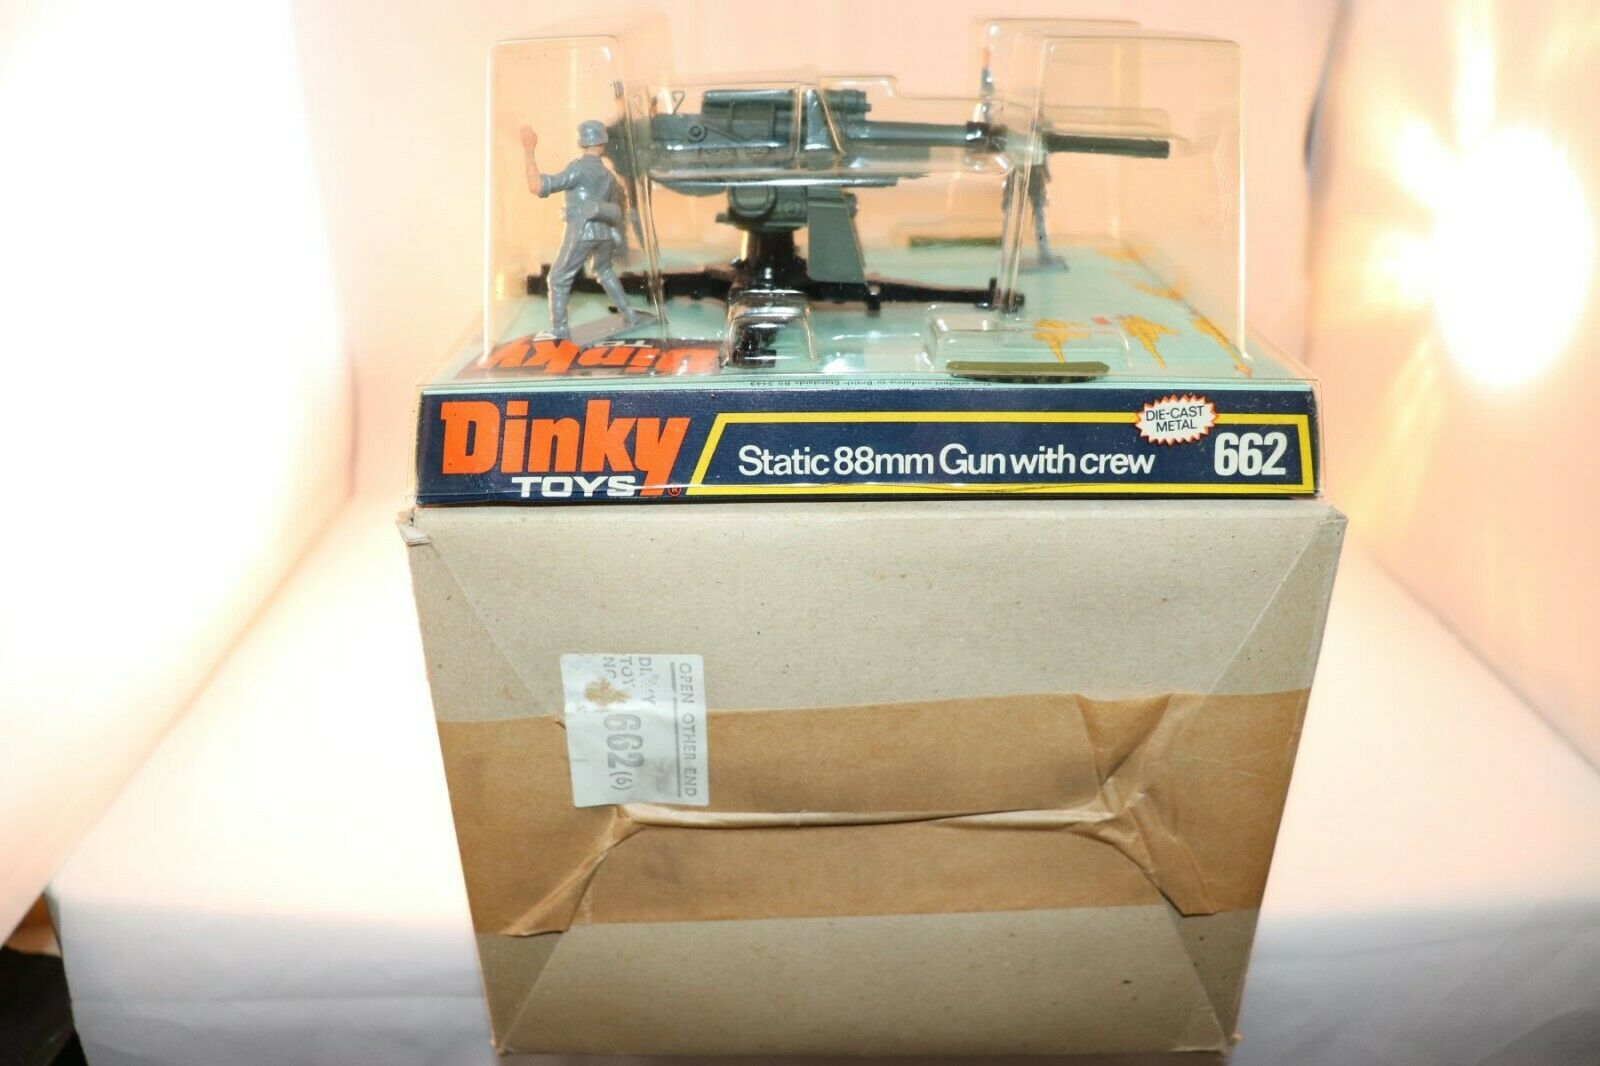 Dinky giocattoli 662 Static 88mm Gun with crew Perfect mint in scatola AMAZING